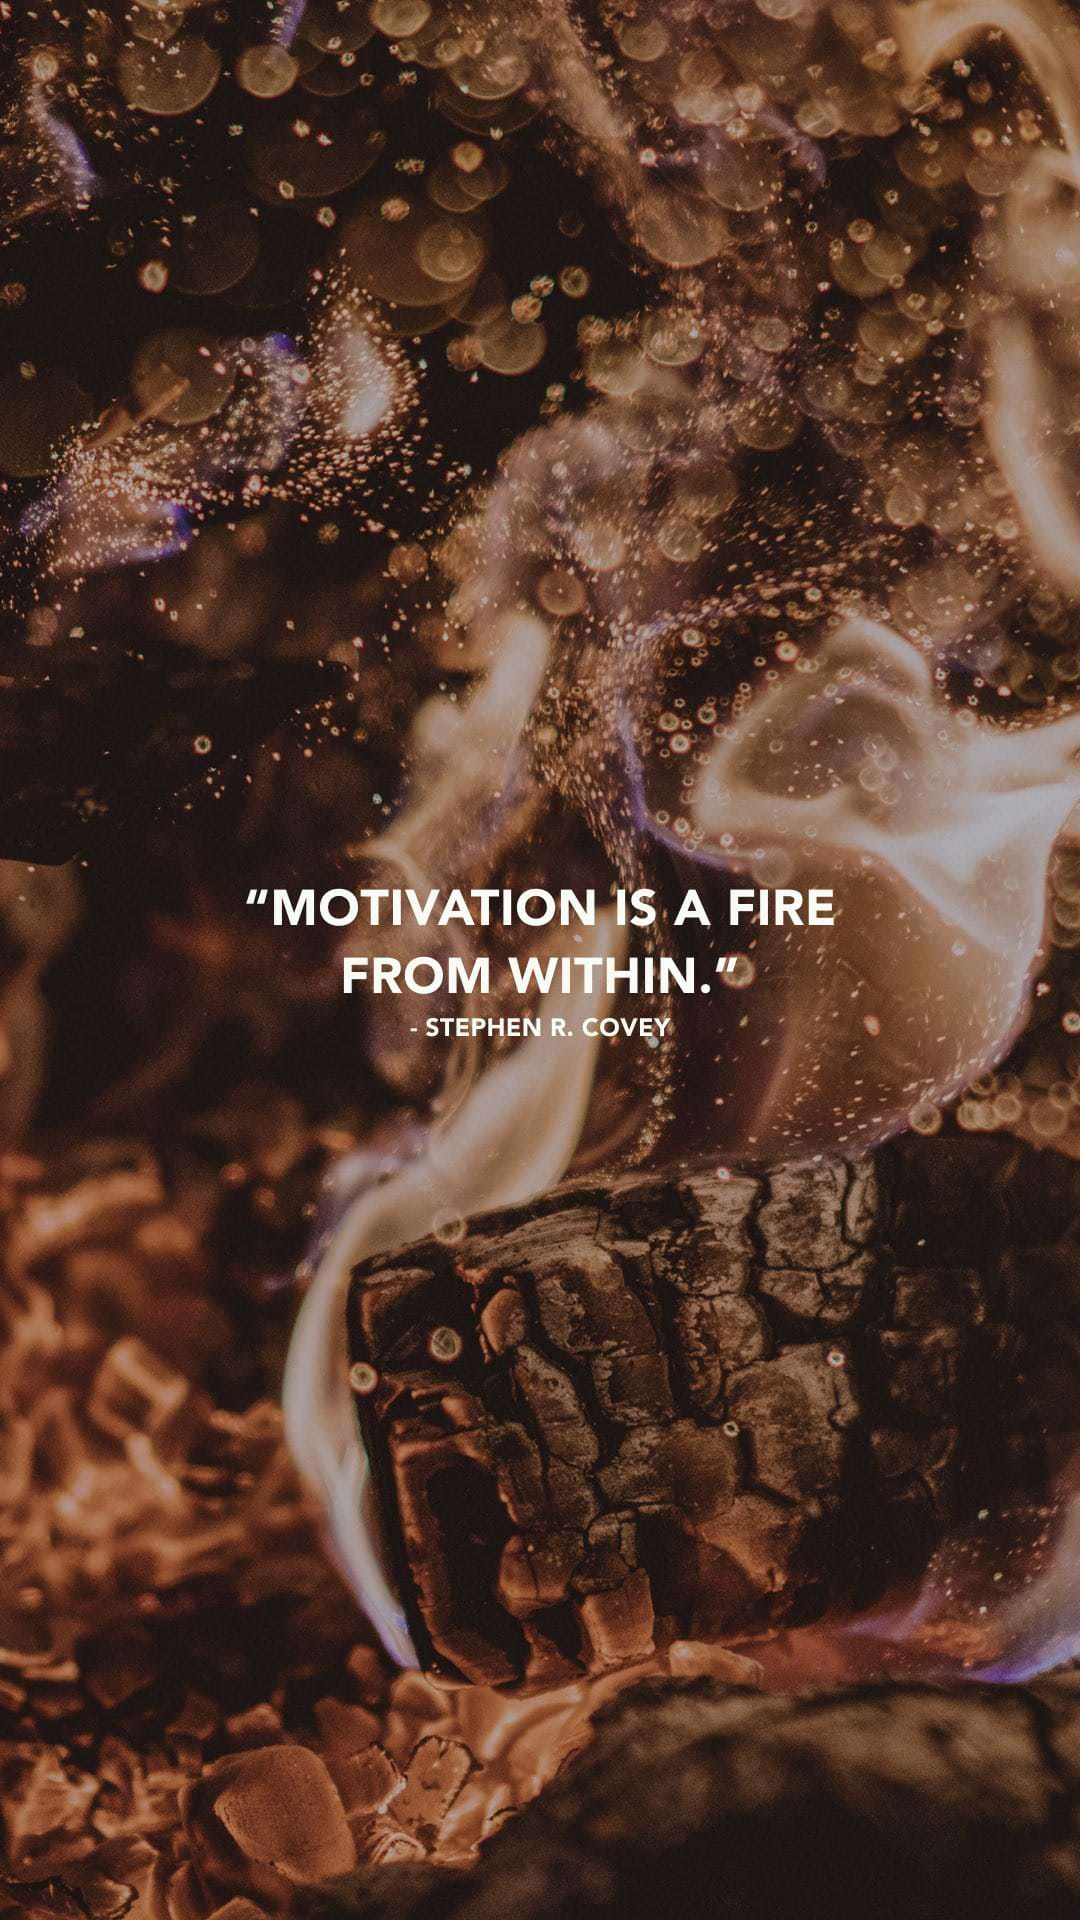 [Image] I made 100 epic phone wallpapers with quotes and sick nature shots for motivation, strength, and wisdom.